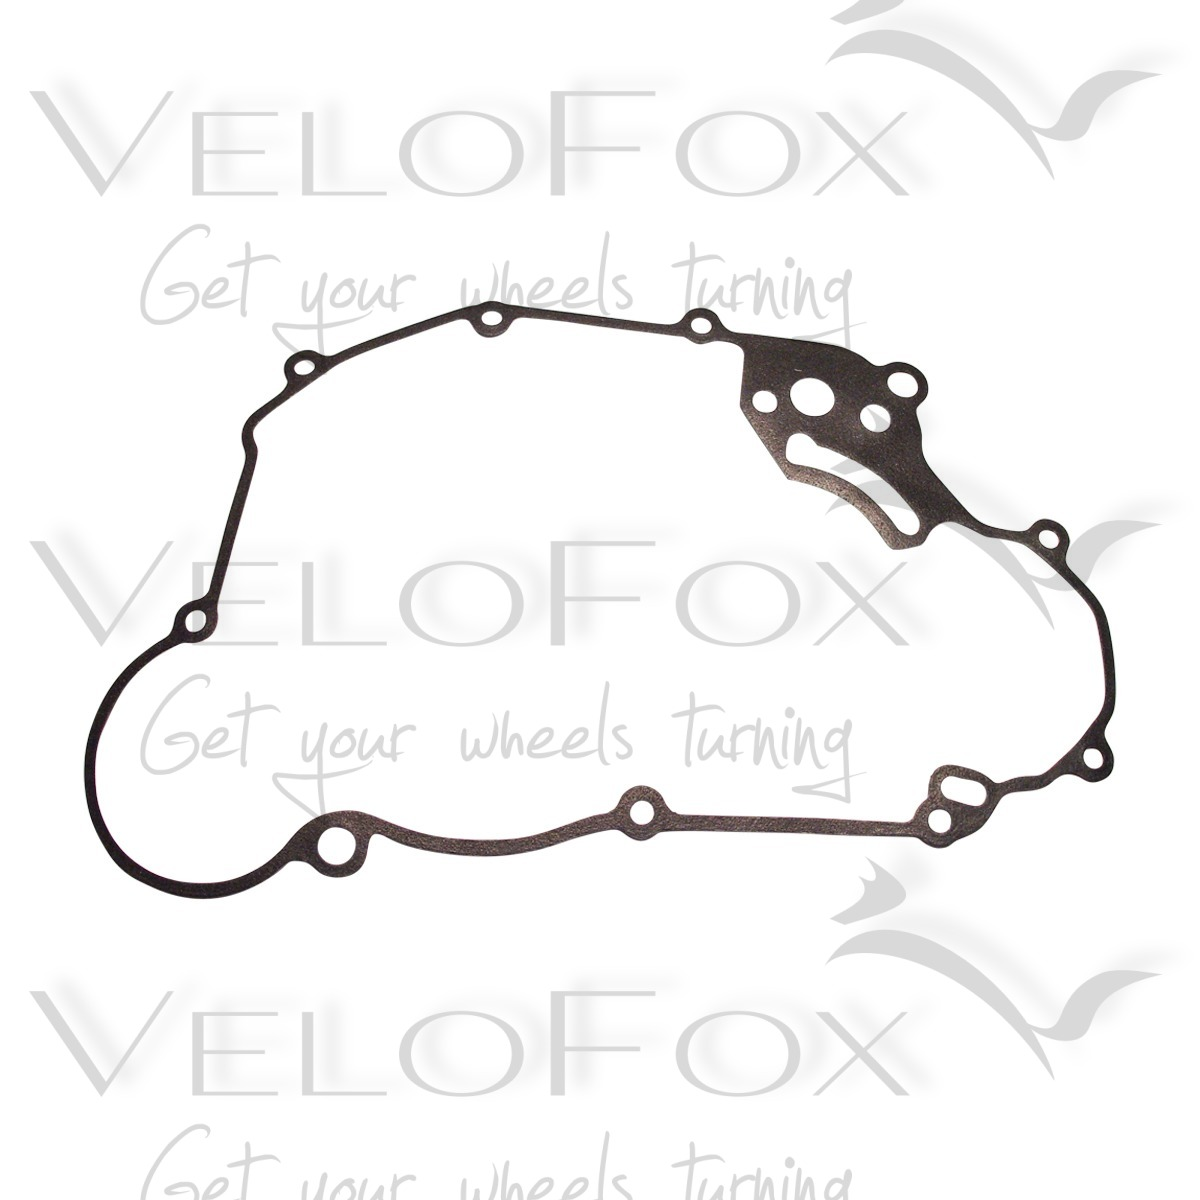 Athena Clutch Cover Gasket fits Derbi GPR 125 4T Racing